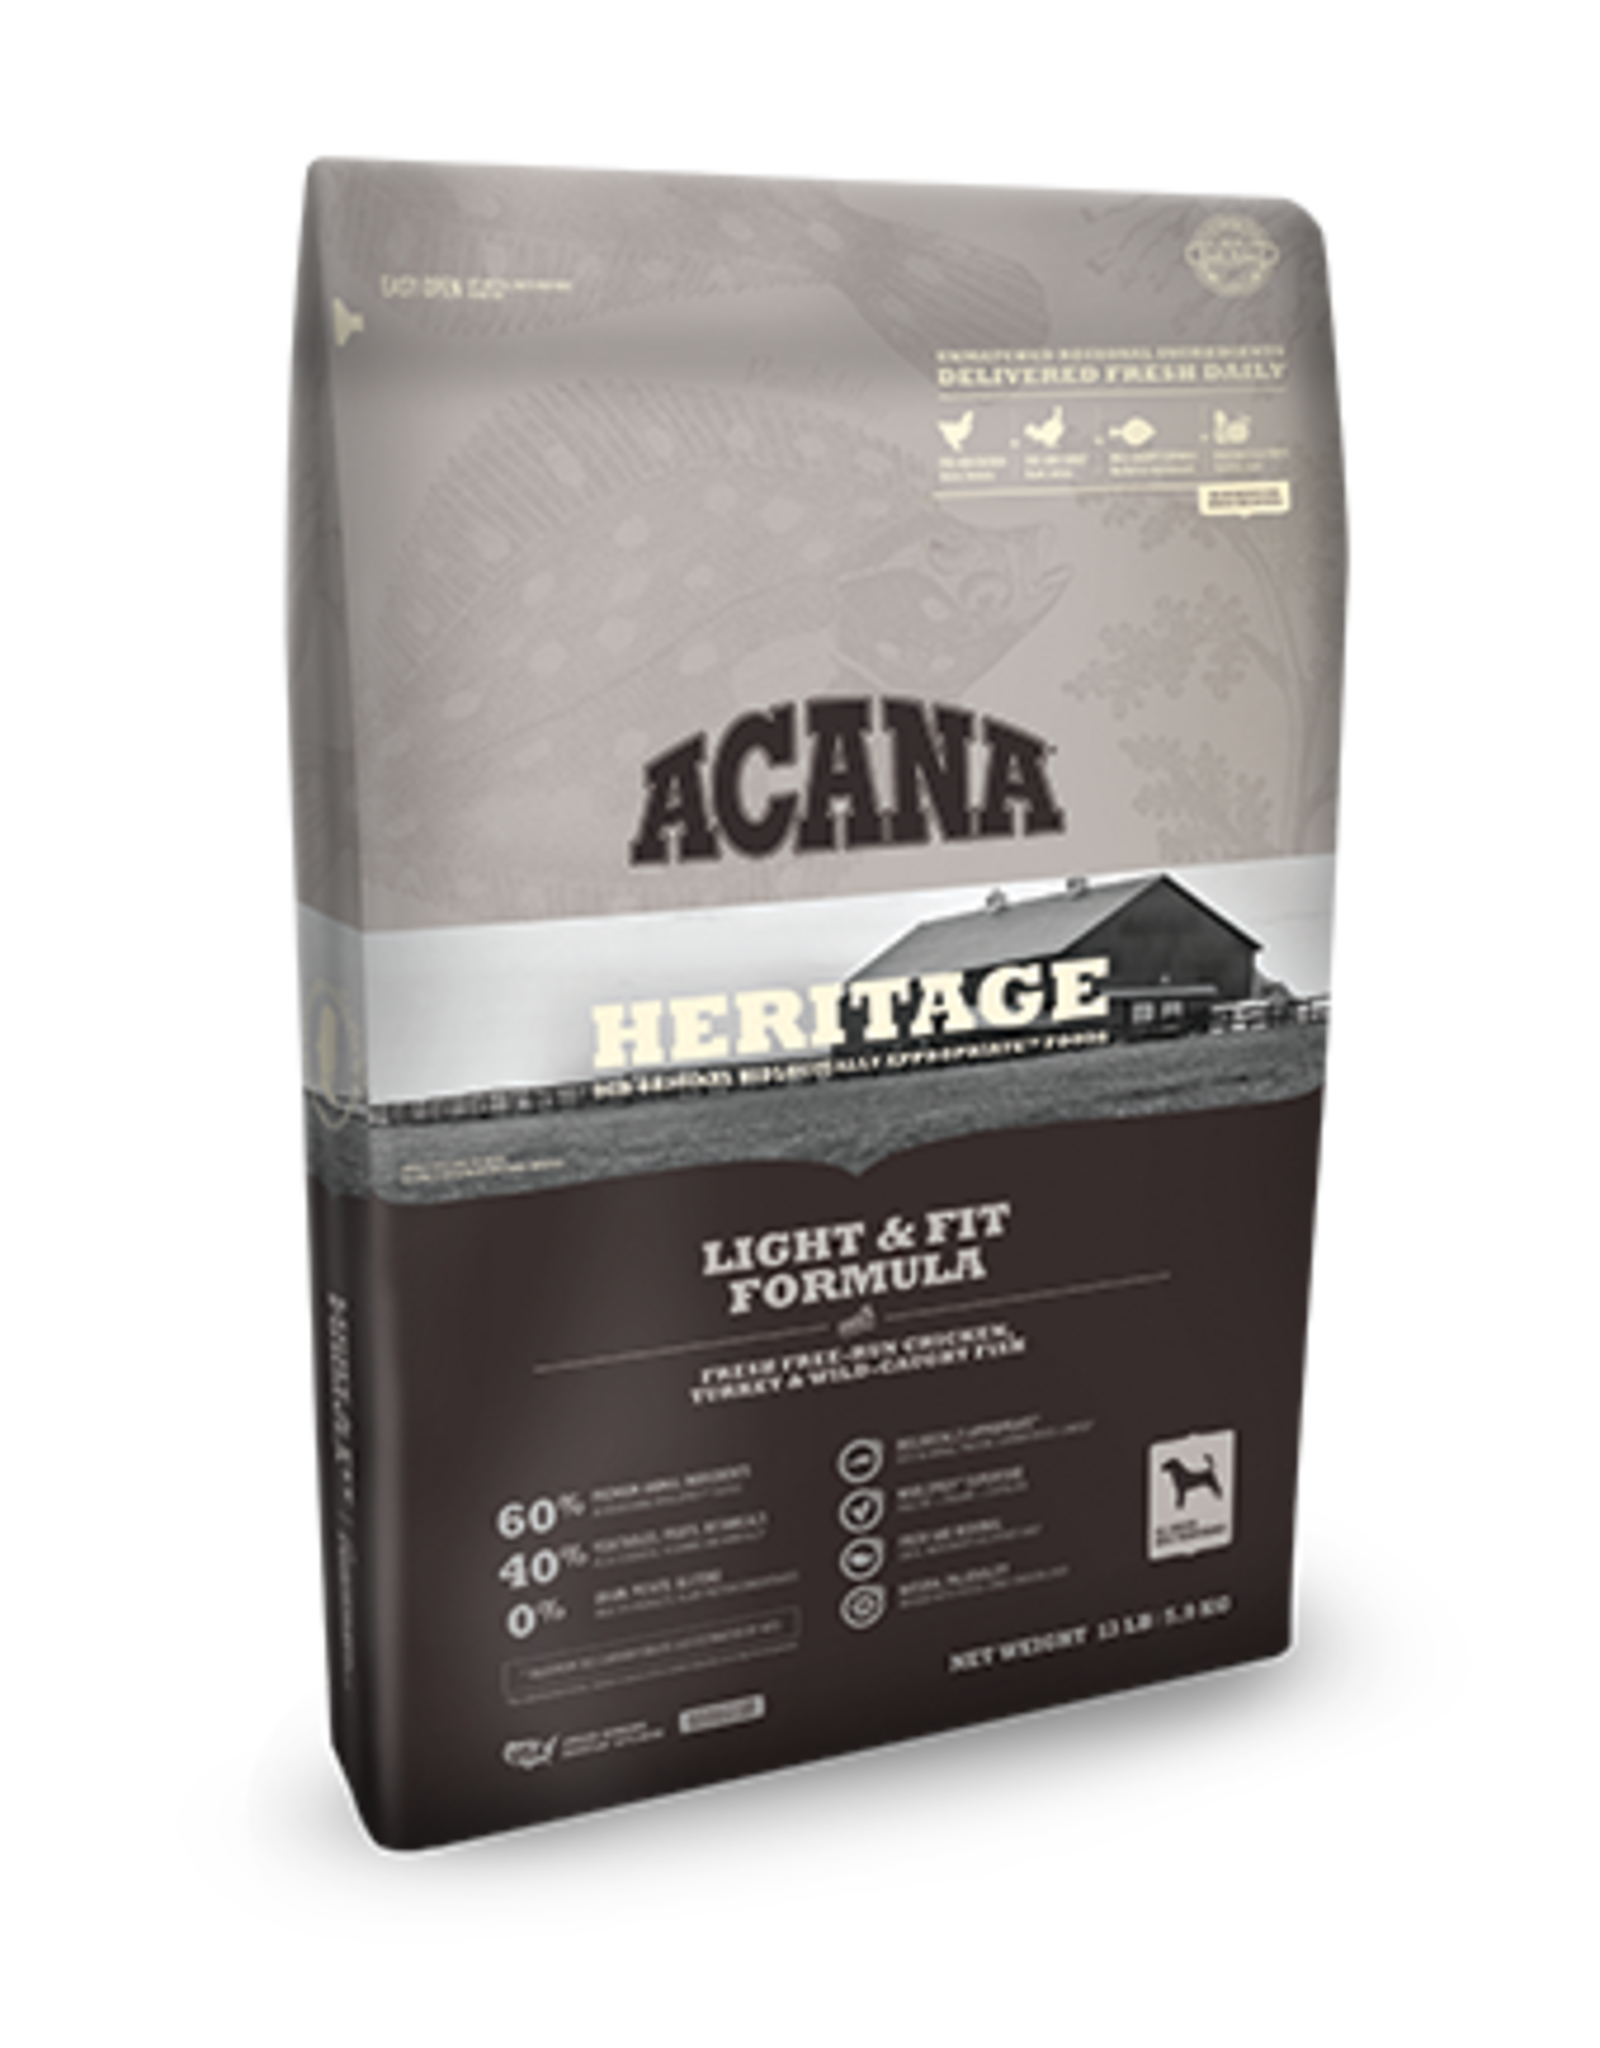 Acana Acana Heritage Dog Food Light & Fit